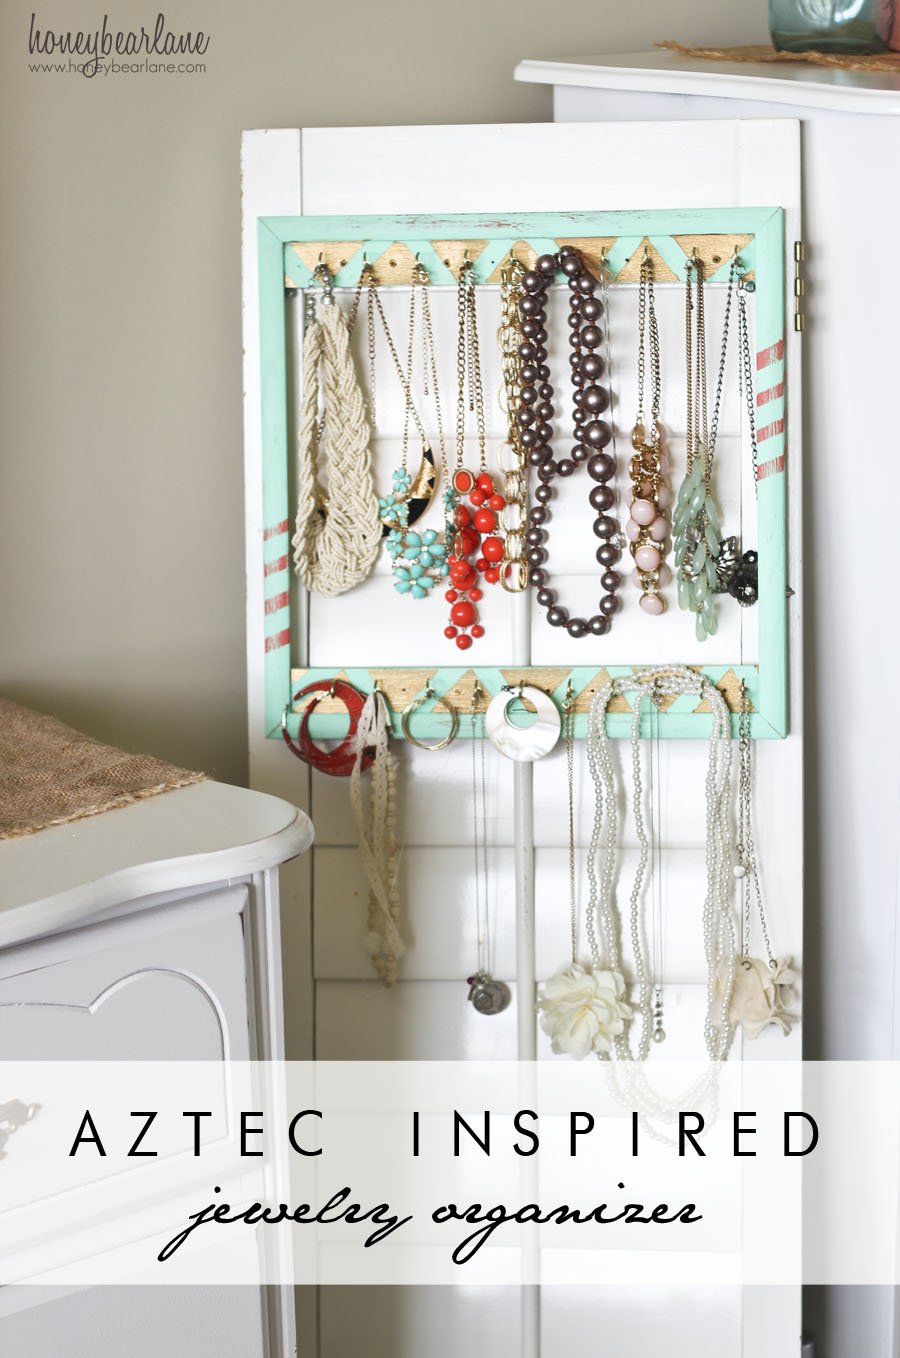 Aztec Inspired Jewelry Organizer Honeybear Lane